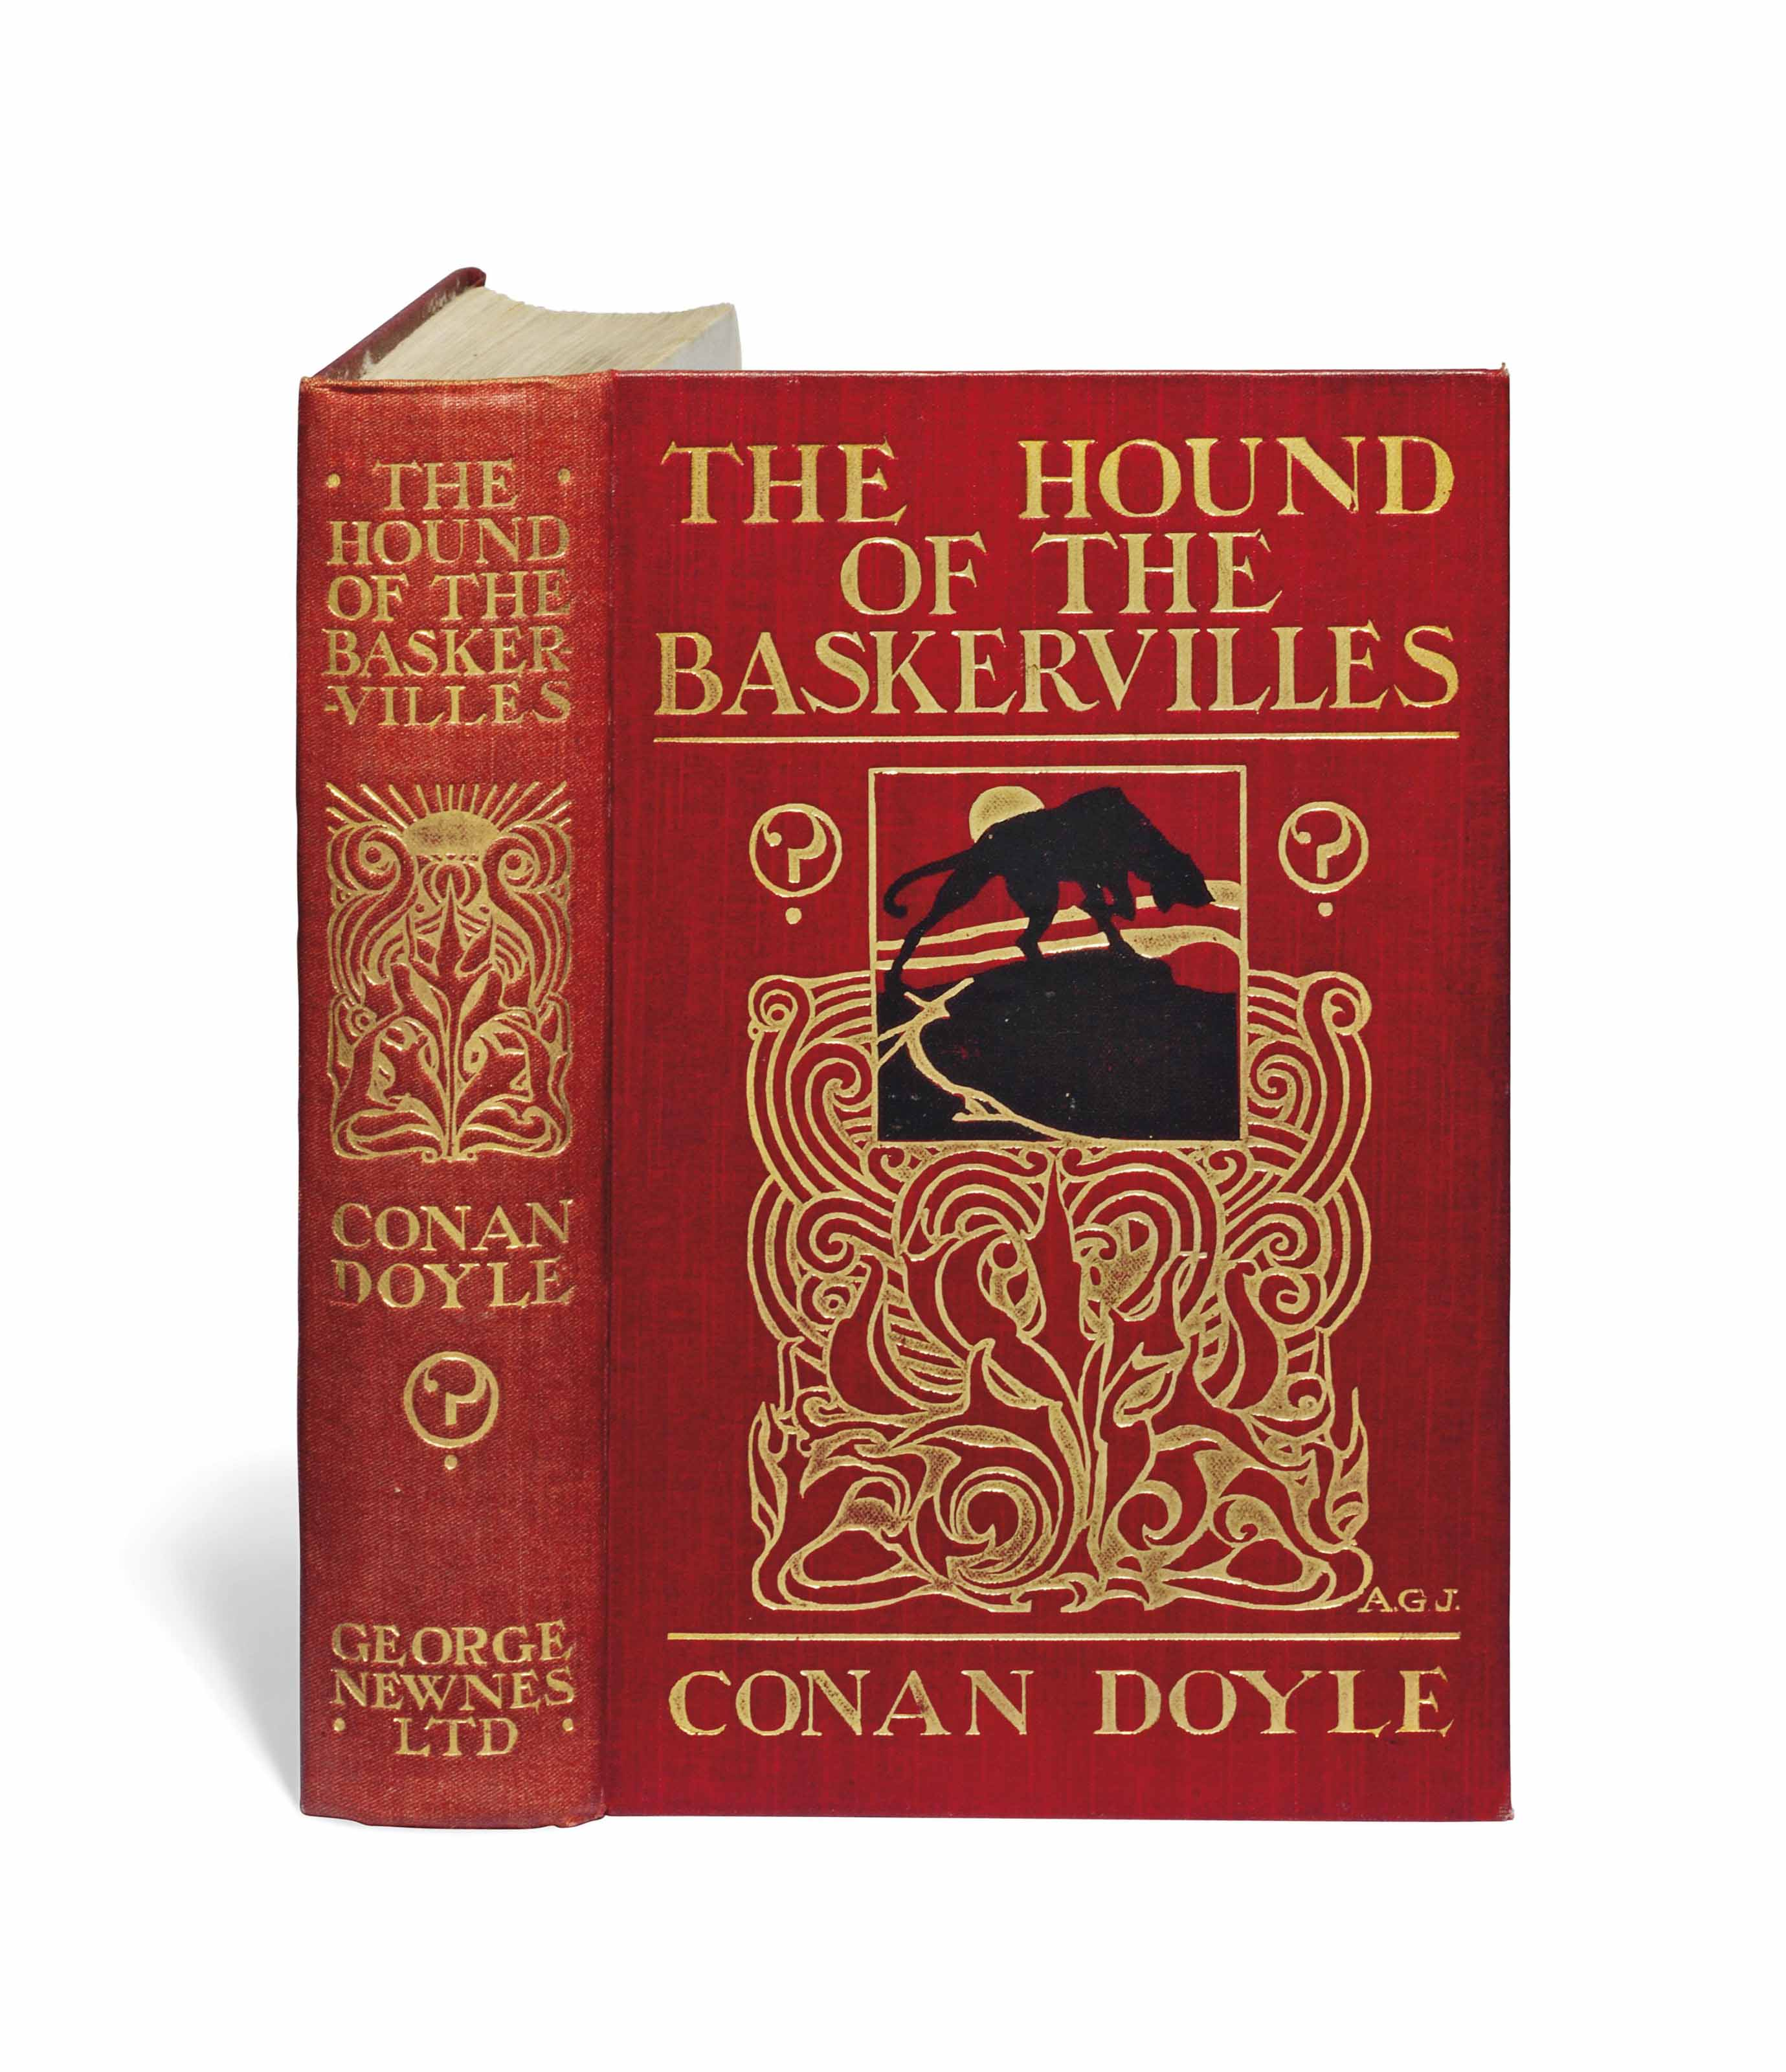 DOYLE, Arthur Conan (1859-1930). The Hound of the Baskervilles. London: George Newnes, 1902. 8° (186 x 120mm). Frontispiece and 15 plates by Sidney Paget. (Edges lightly spotted.) Original pictorial red cloth, spine and upper side stamped in gilt after a design by Alfred Garth Jones (spine lightly and evenly faded, corners lightly rubbed, endpapers spotted). Provenance: John Harries, Bookseller (small ticket).